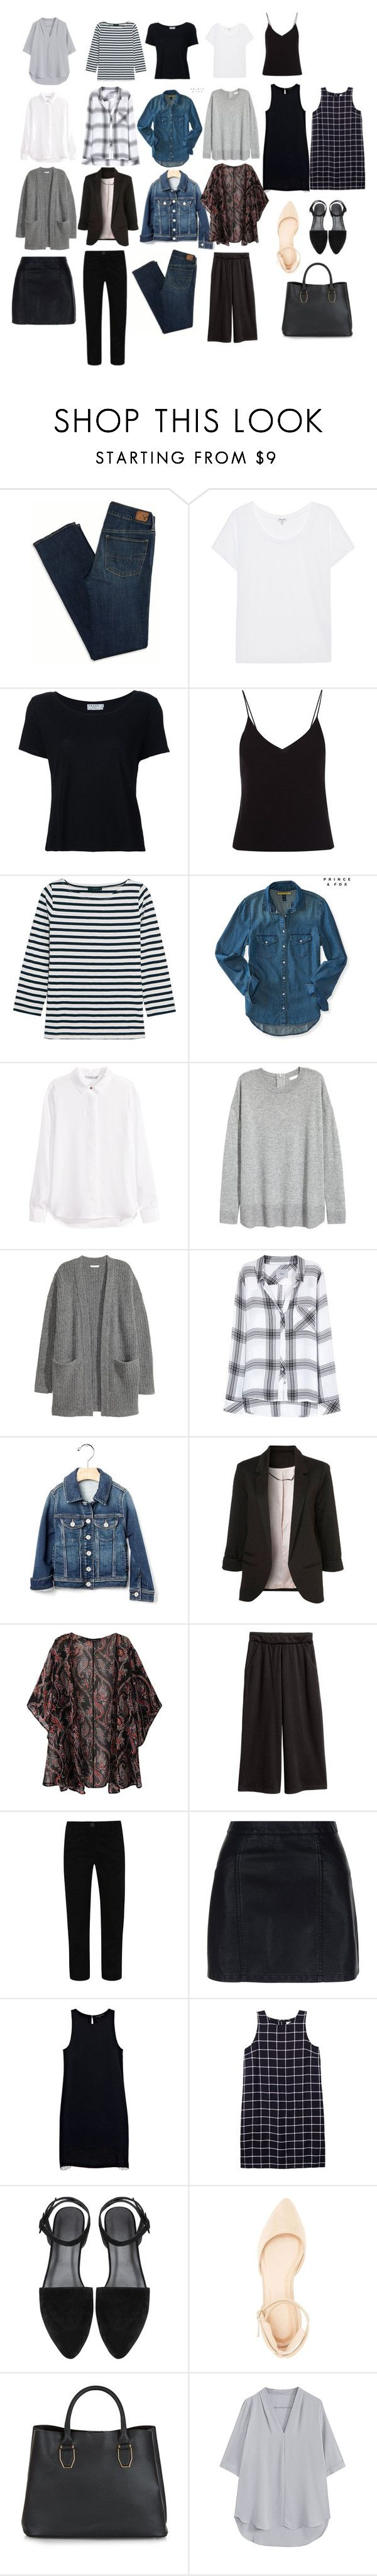 """""""Basic Wardrobe Capsule"""" by samantha-nicole-rivera on Polyvore featuring American Eagle Outfitters, Splendid, Frame Denim, T By Alexander Wang, J.Crew, Aéropostale, H&M, Rails, George and New Look"""